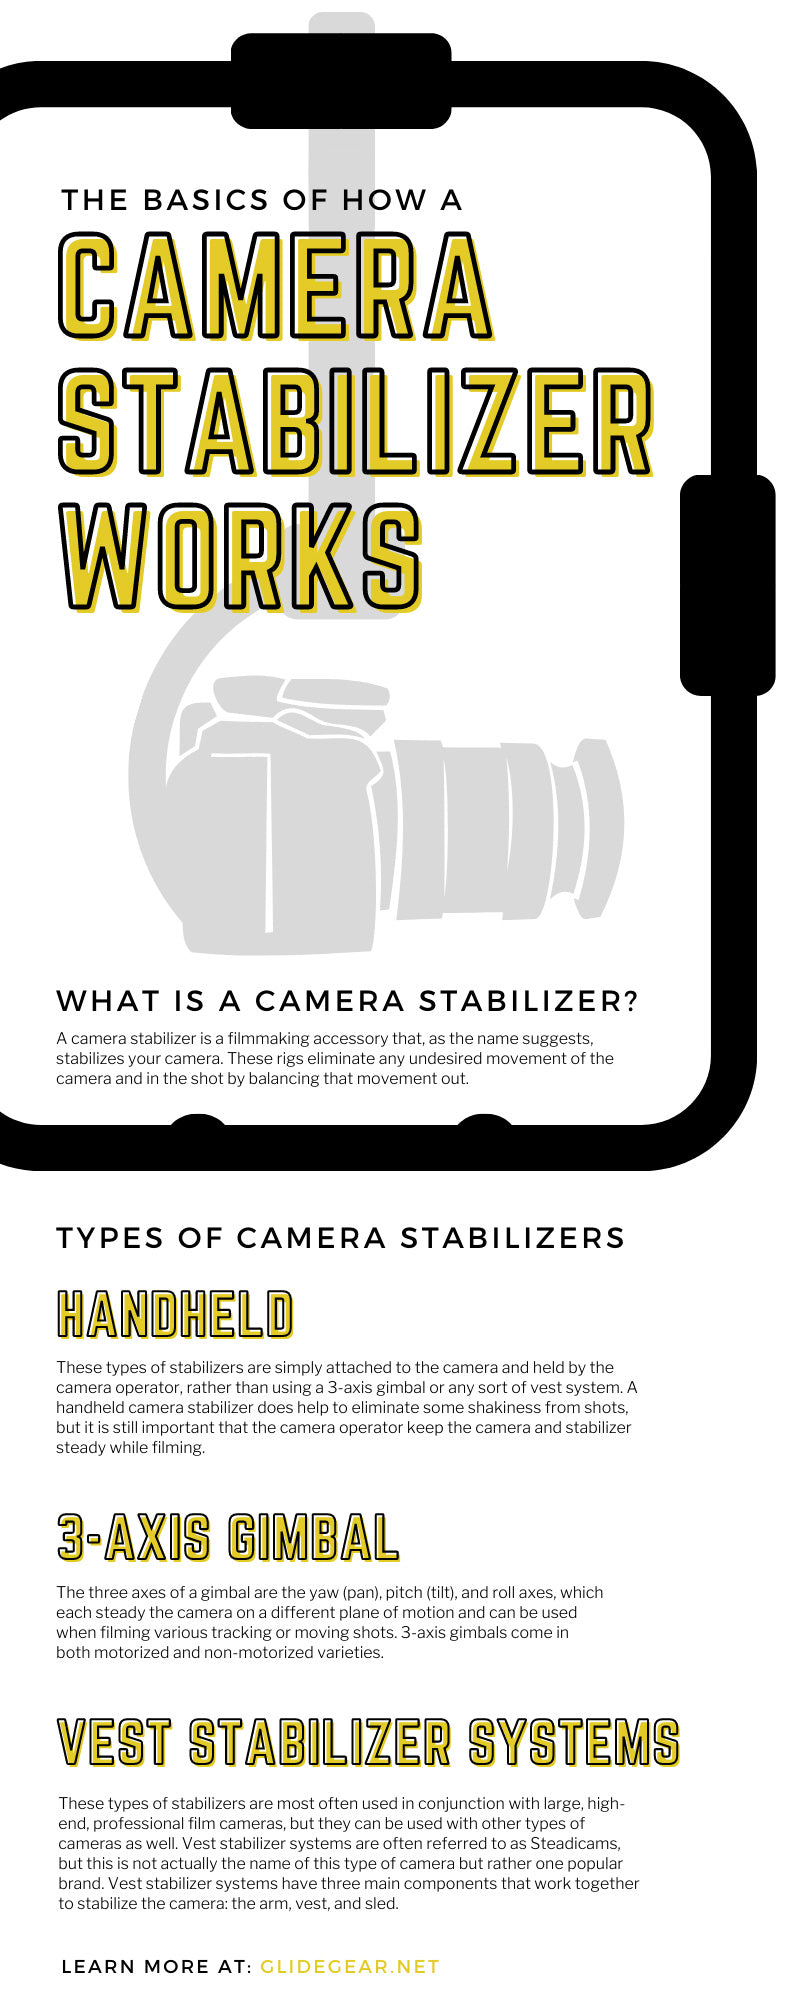 The Basics of How a Camera Stabilizer Works